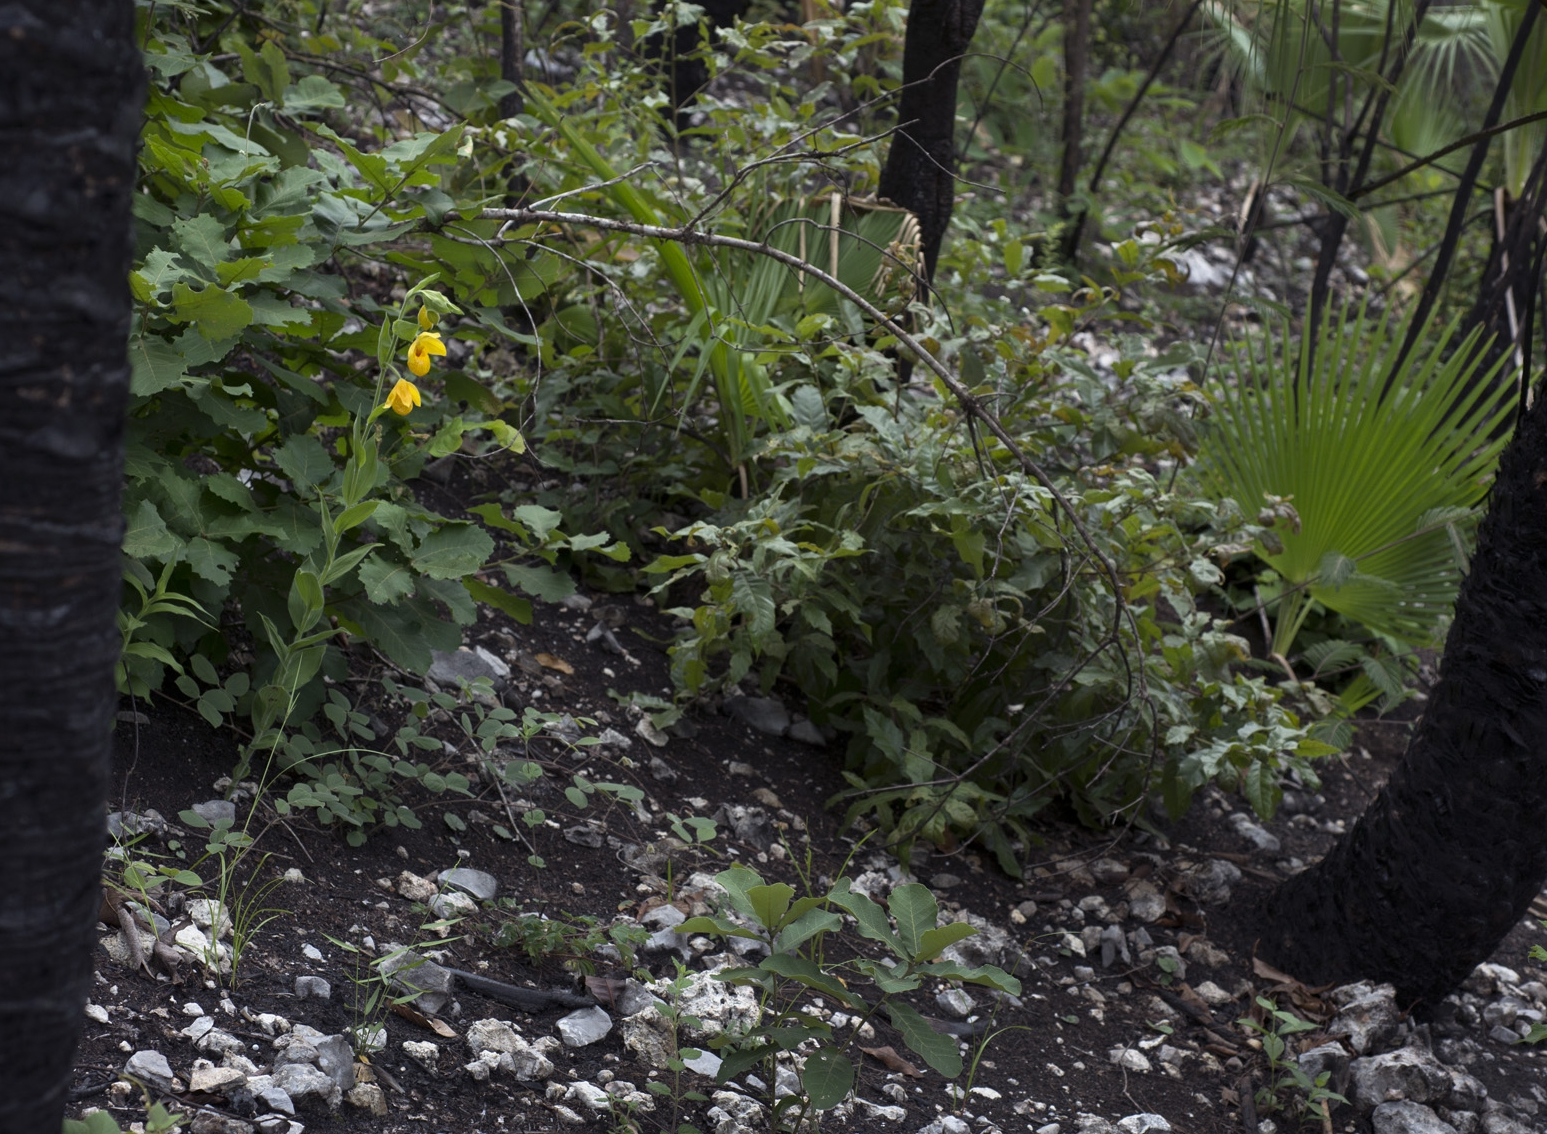 Cypripedium  x  fred-muller i emerging after a recent burn in mixed oak-suyate palm ( Brahea dulcis ) forest, Alta Verapaz Department, Guatemala (Image: F. Muller).